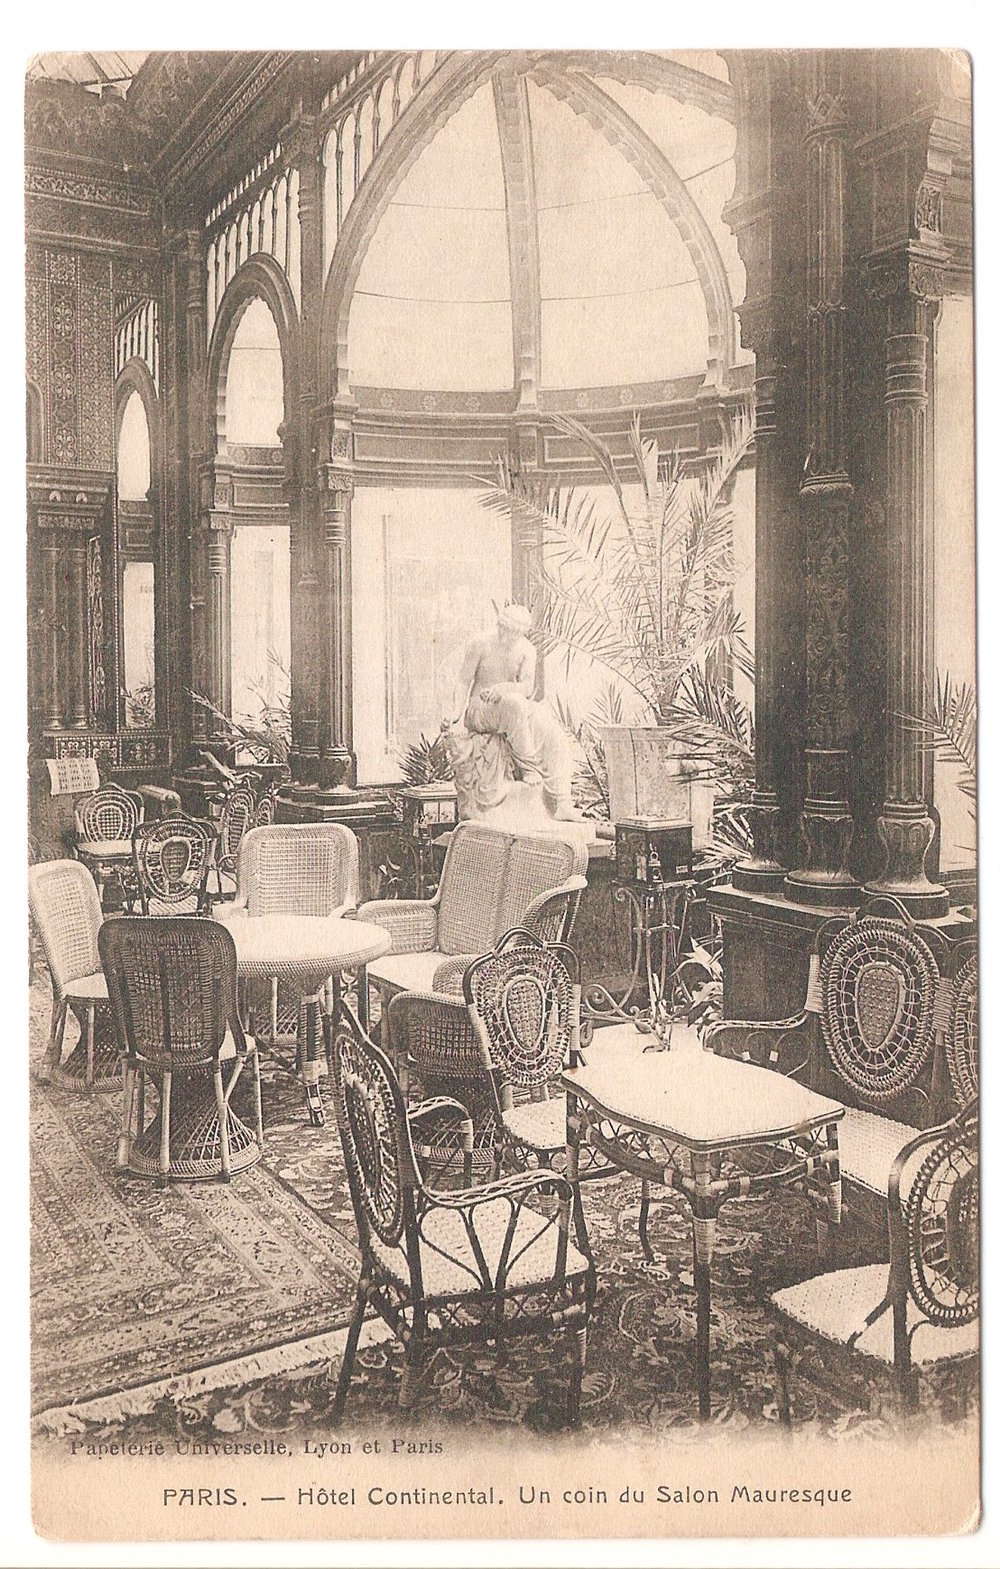 Hotel Continental, Paris. No date. Papelerie Universelle, Lyon et Paris.